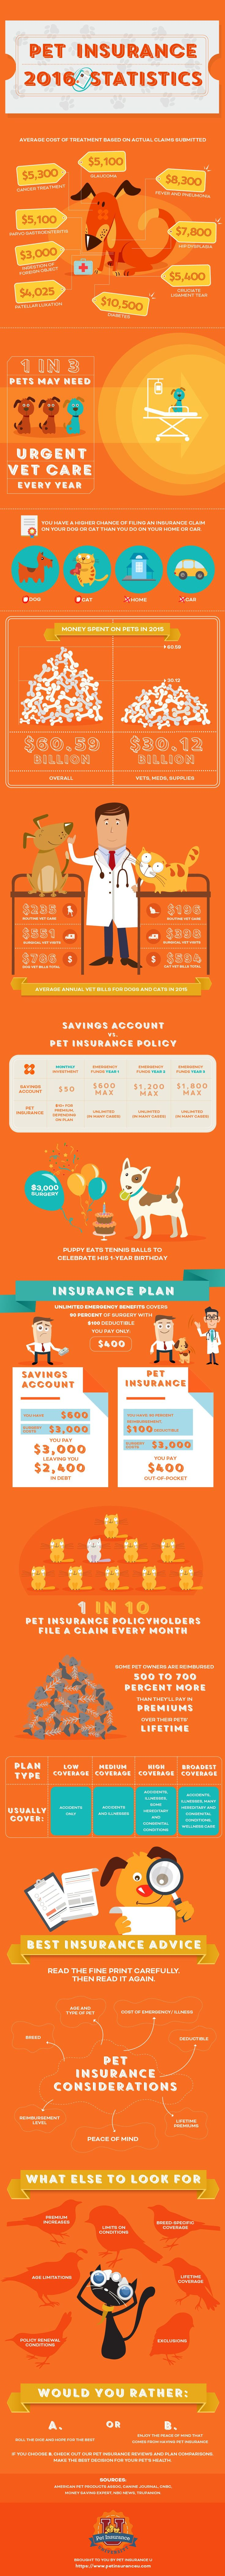 2016 Pet Insurance Reviews and Ratings Infographic   To know more about us visit- https://www.petinsuranceu.com/pet-insurance-reviews/